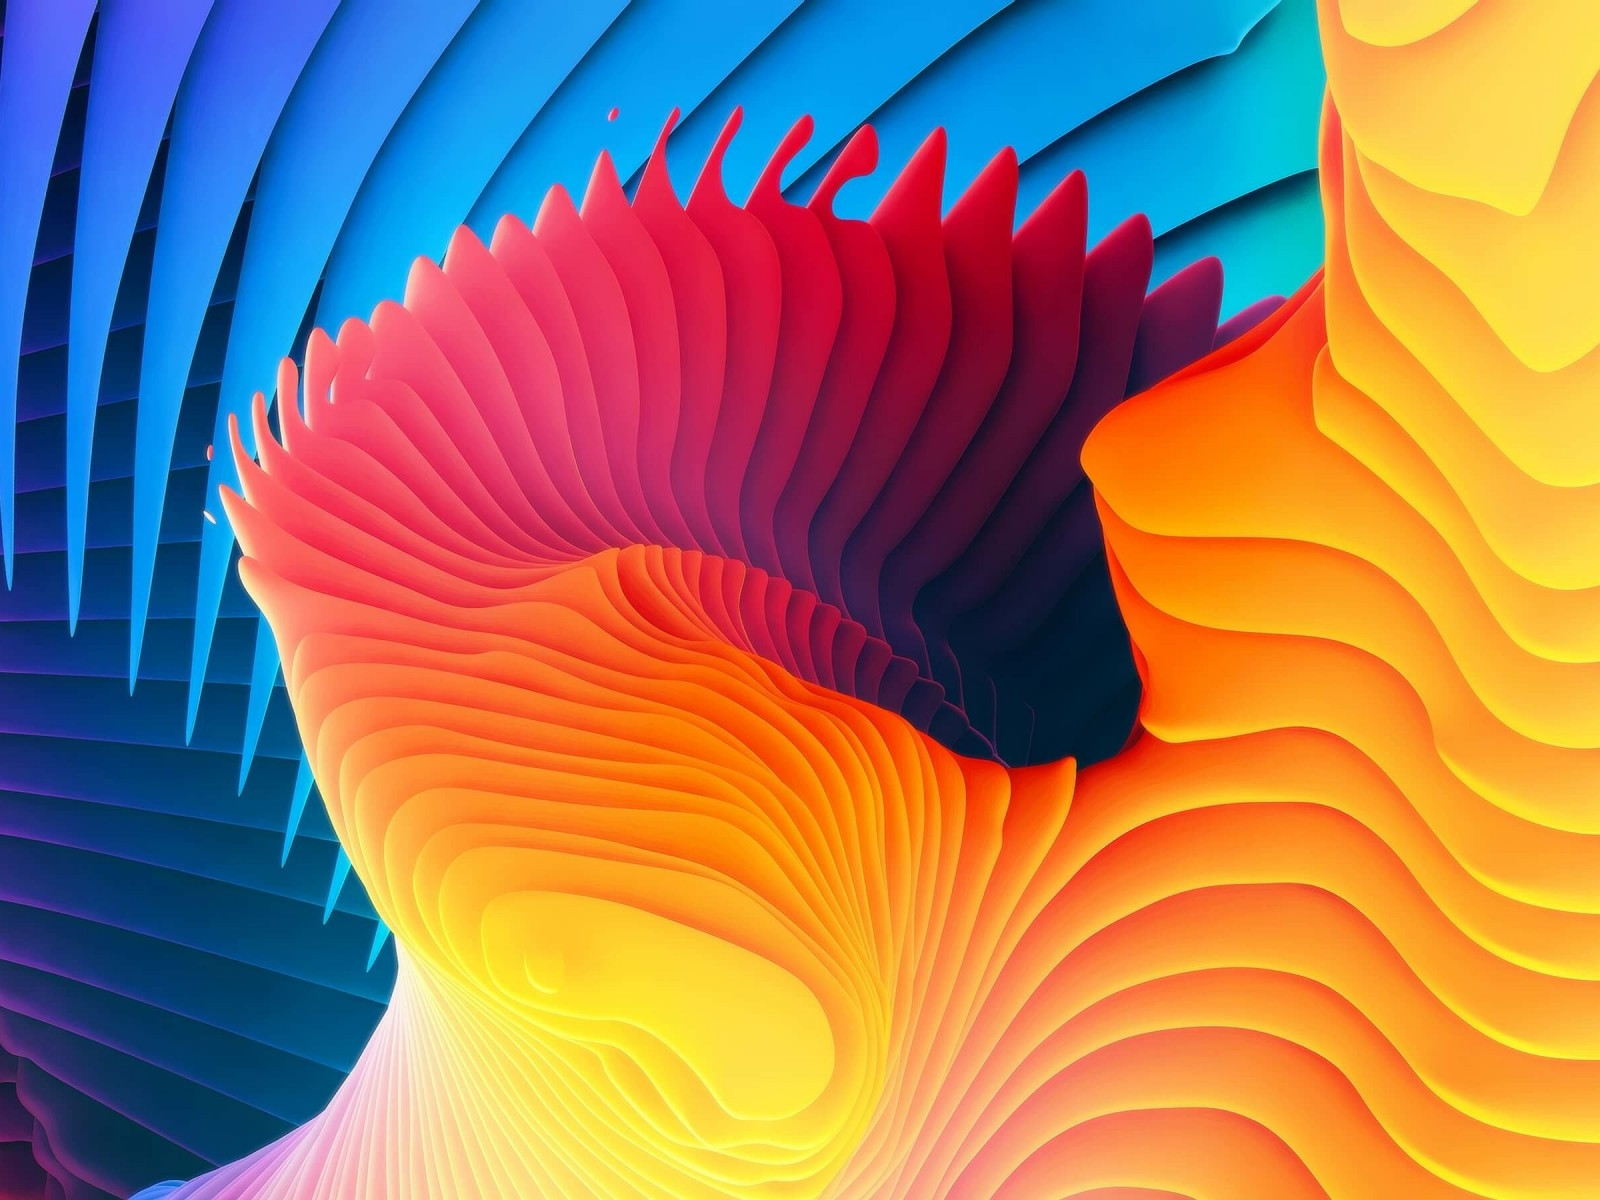 3D Colorful Spiral Wallpaper for Desktop 1600x1200